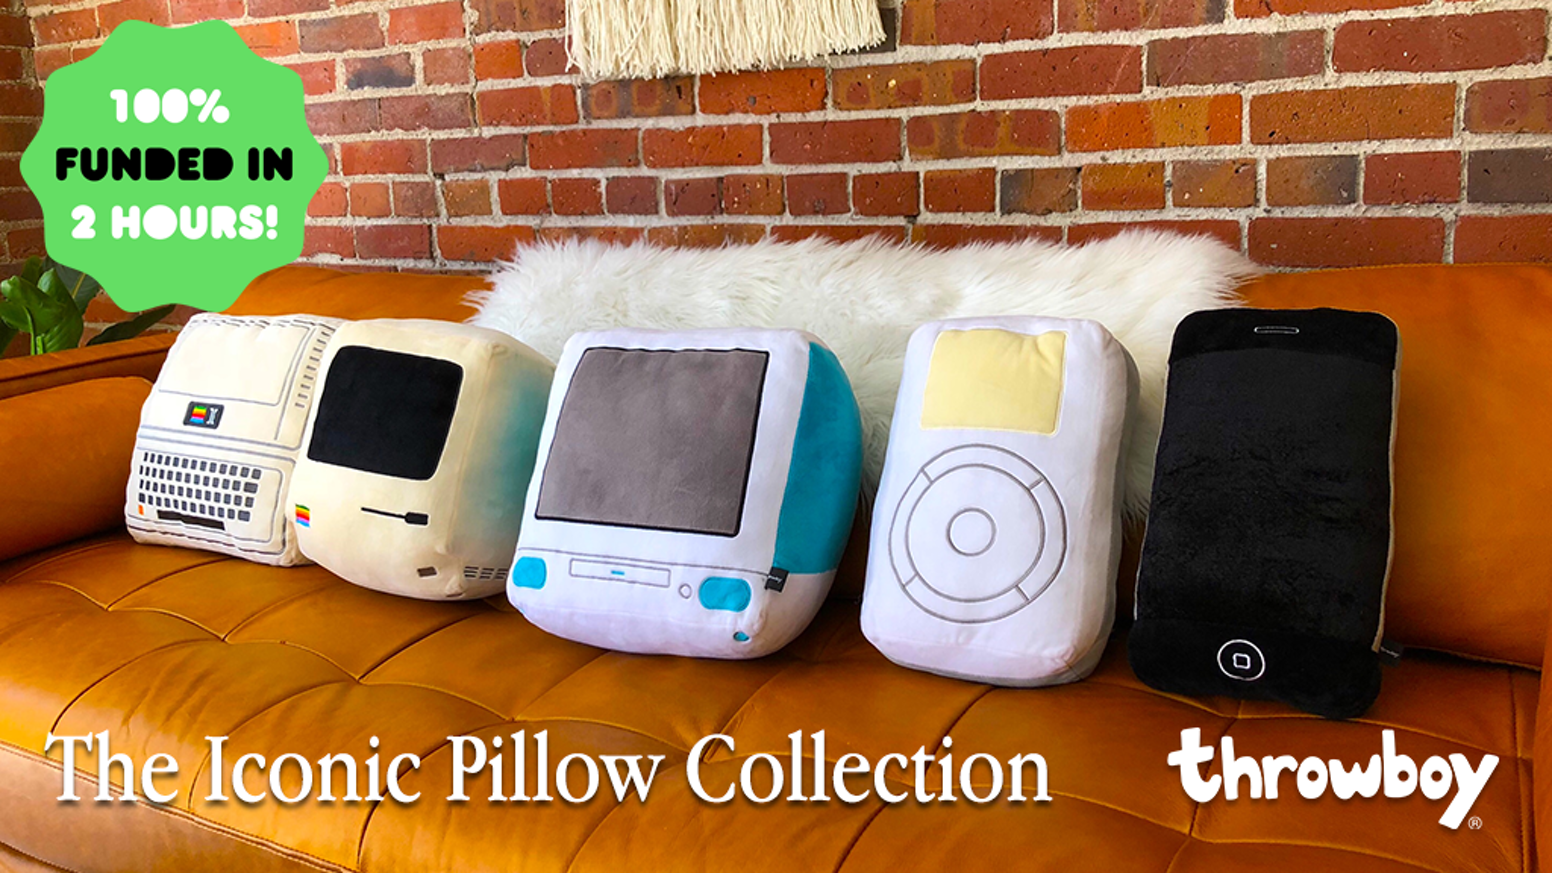 A cuddly tribute to the tech that changed our lives.